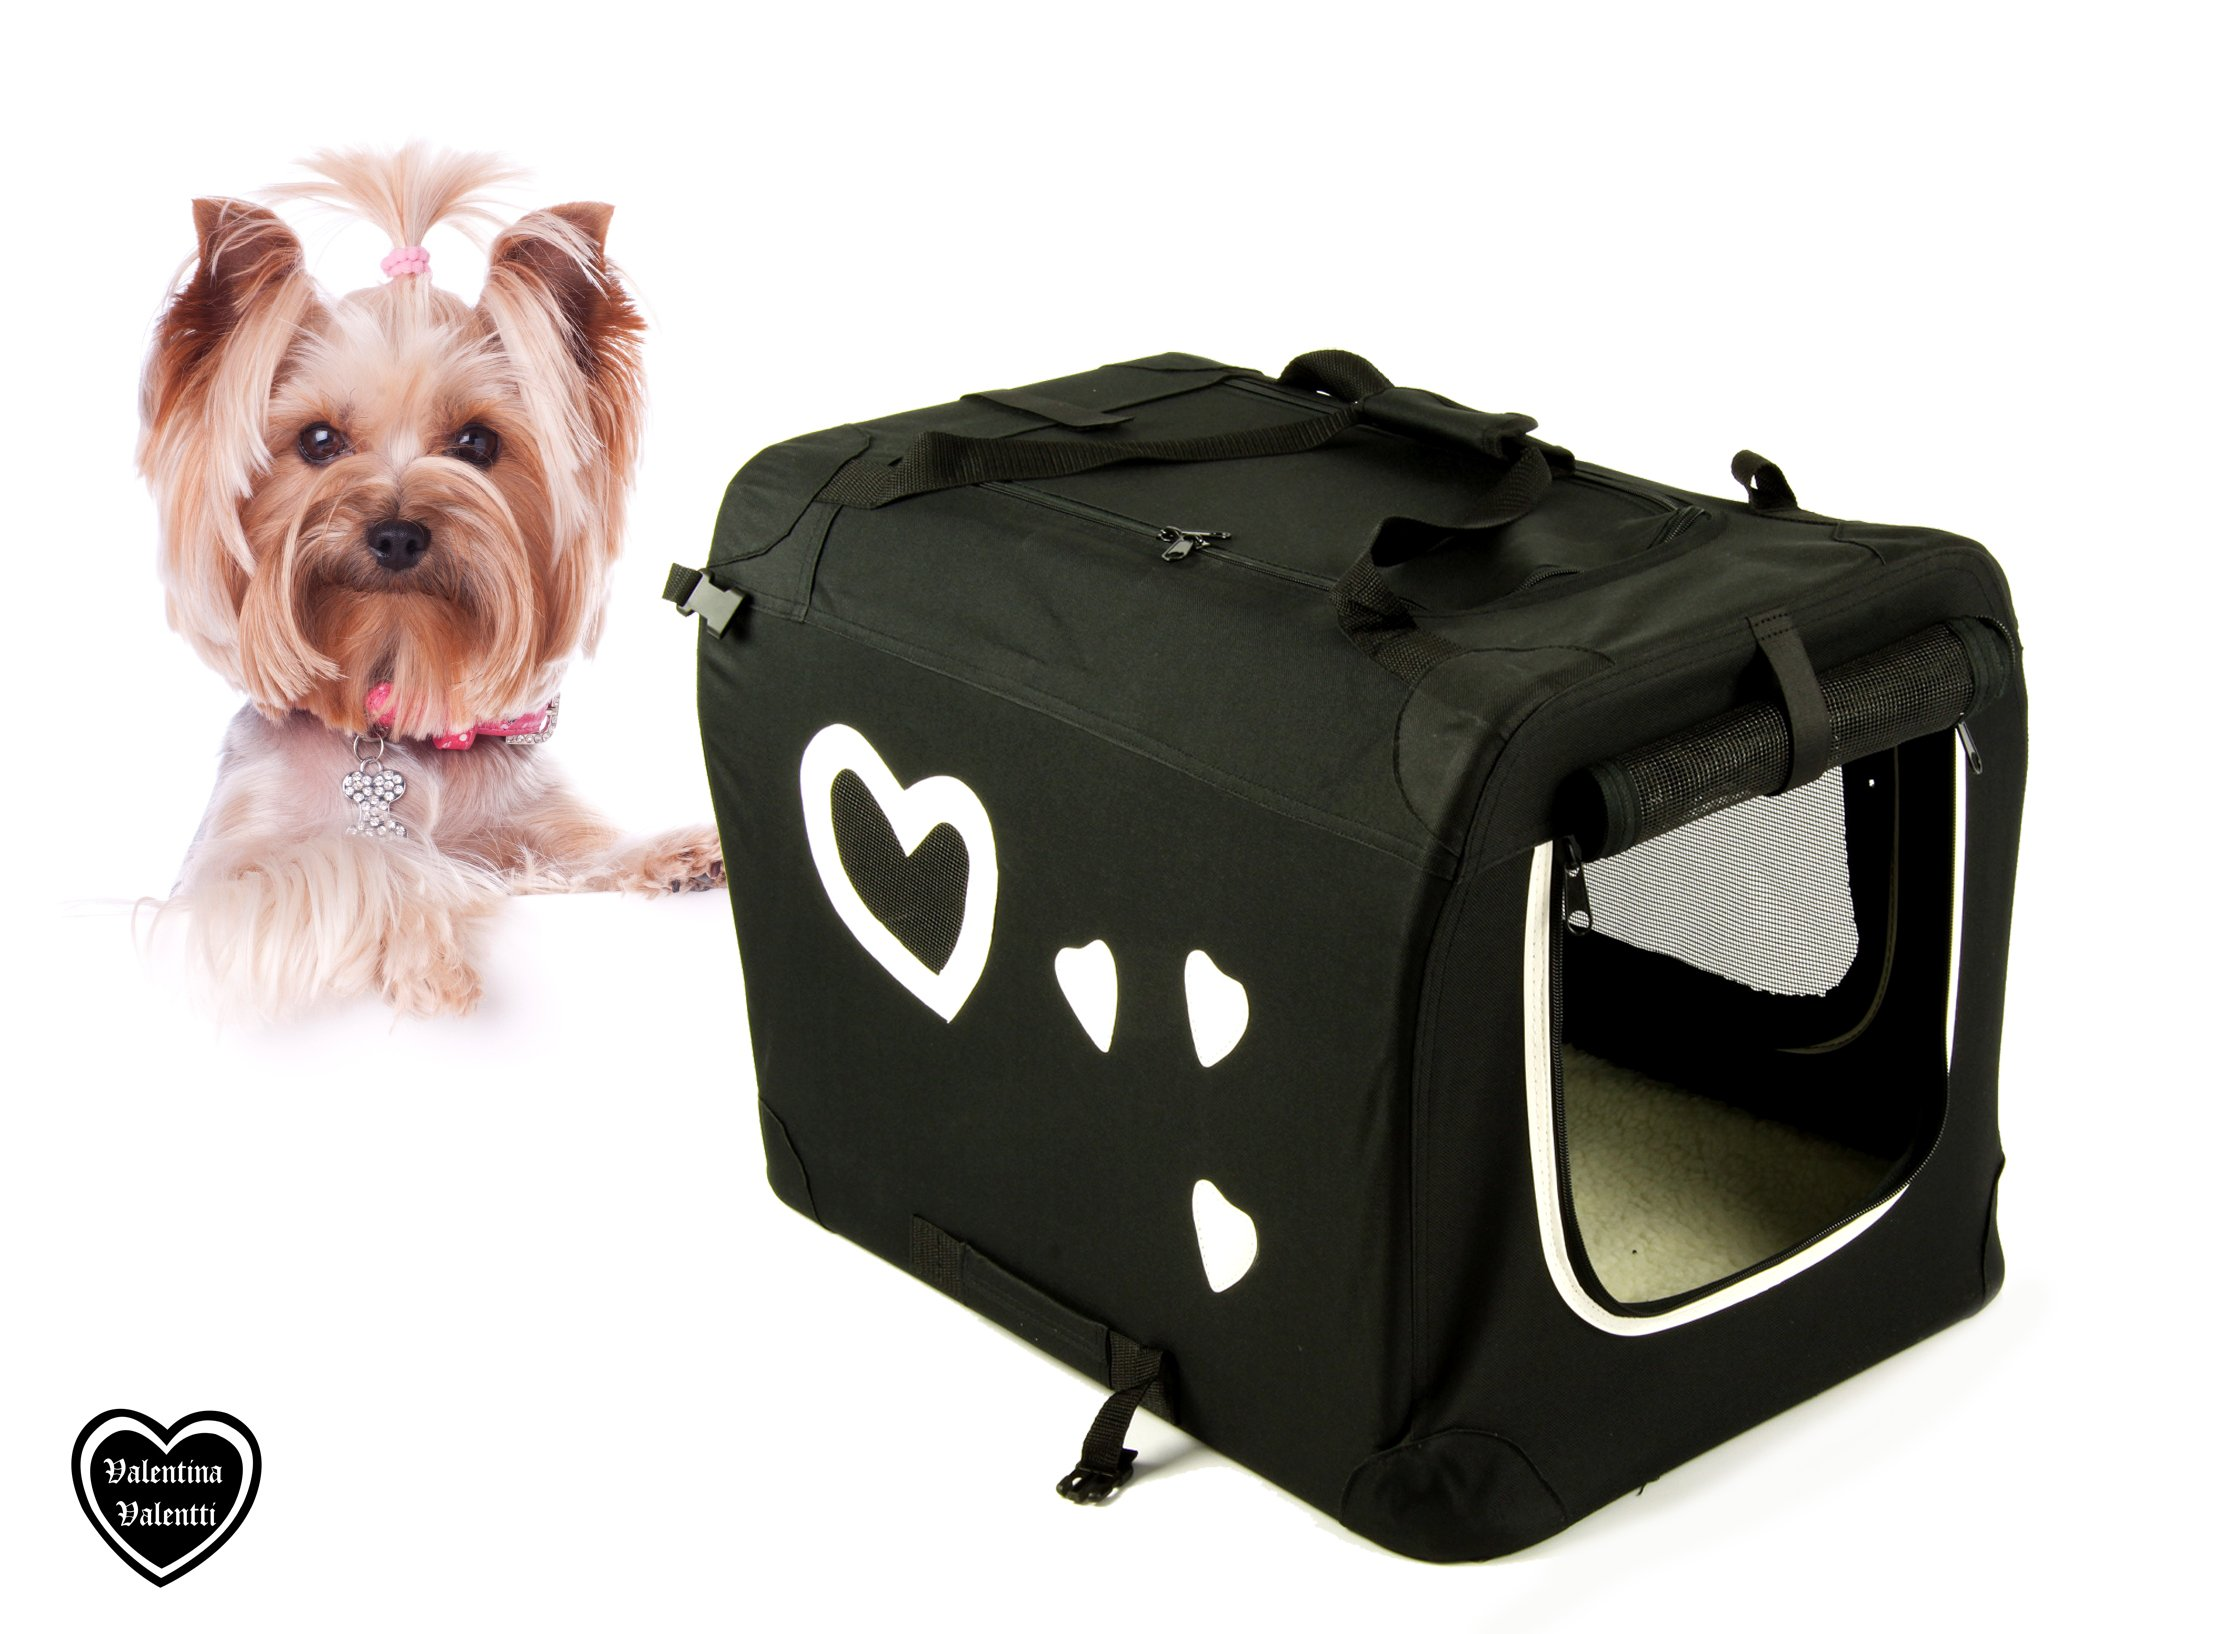 PET FOLDING CARRIER TRANSPORT CRATE FOR S/M SIZE DOGS AND CATS, M SIZE